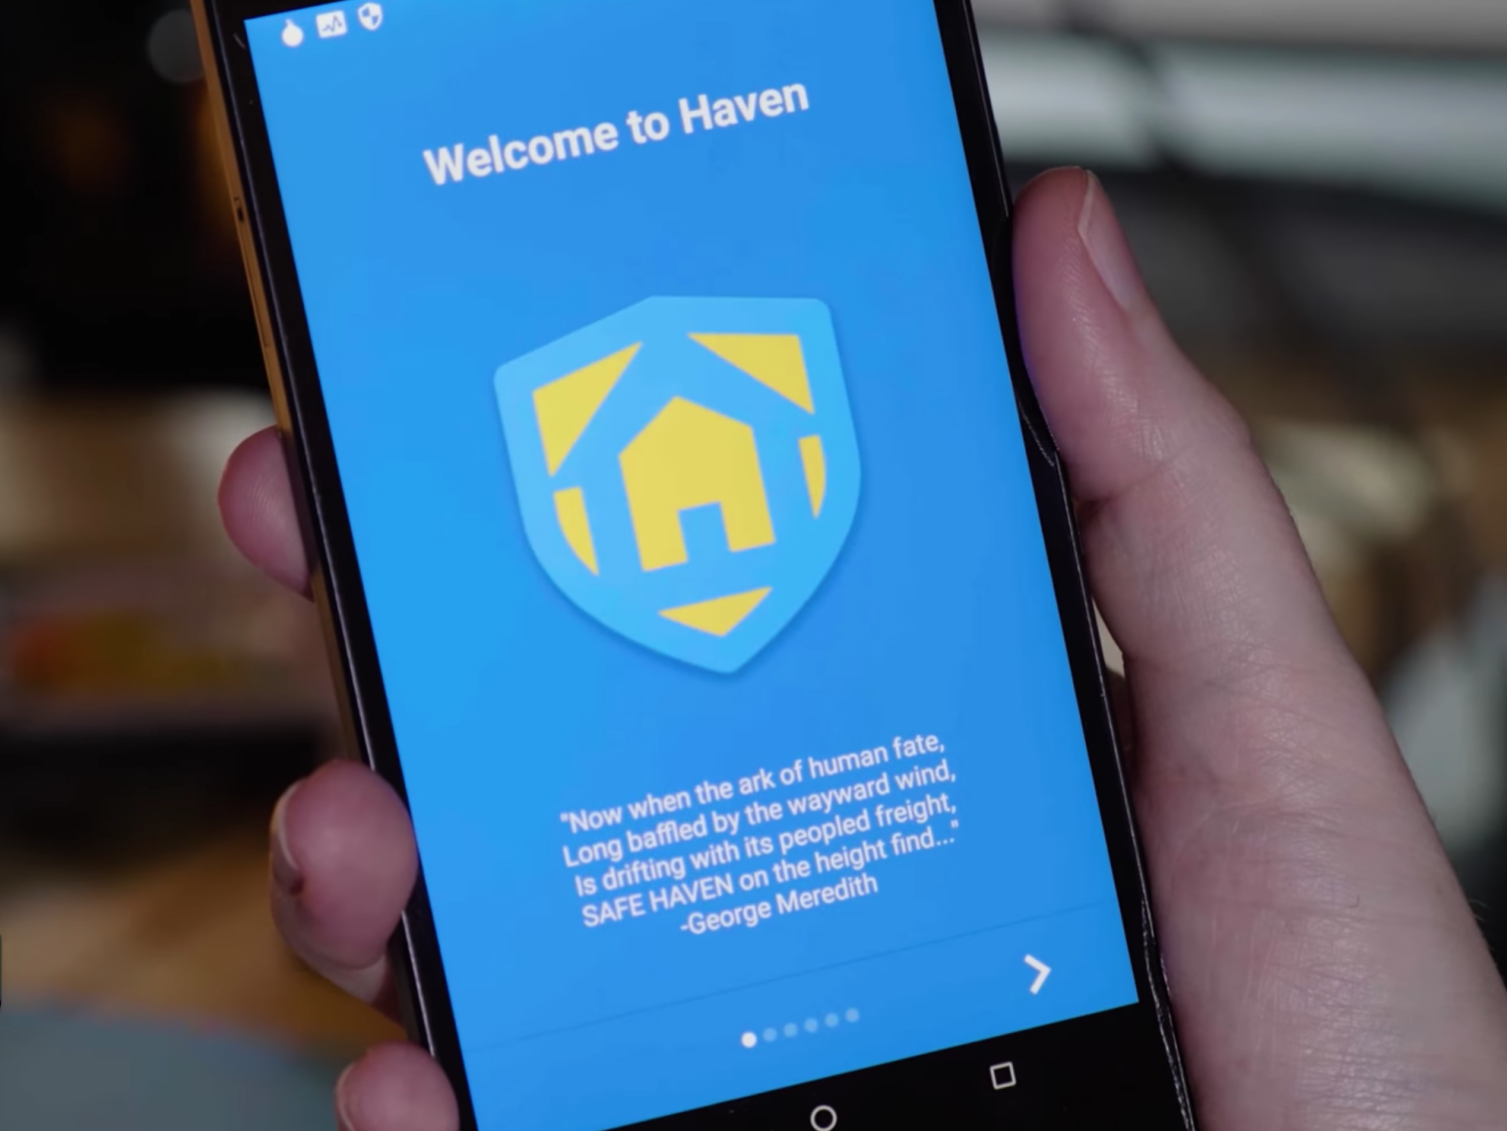 Edward Snowden's new app turns any Android phone into a surveillance